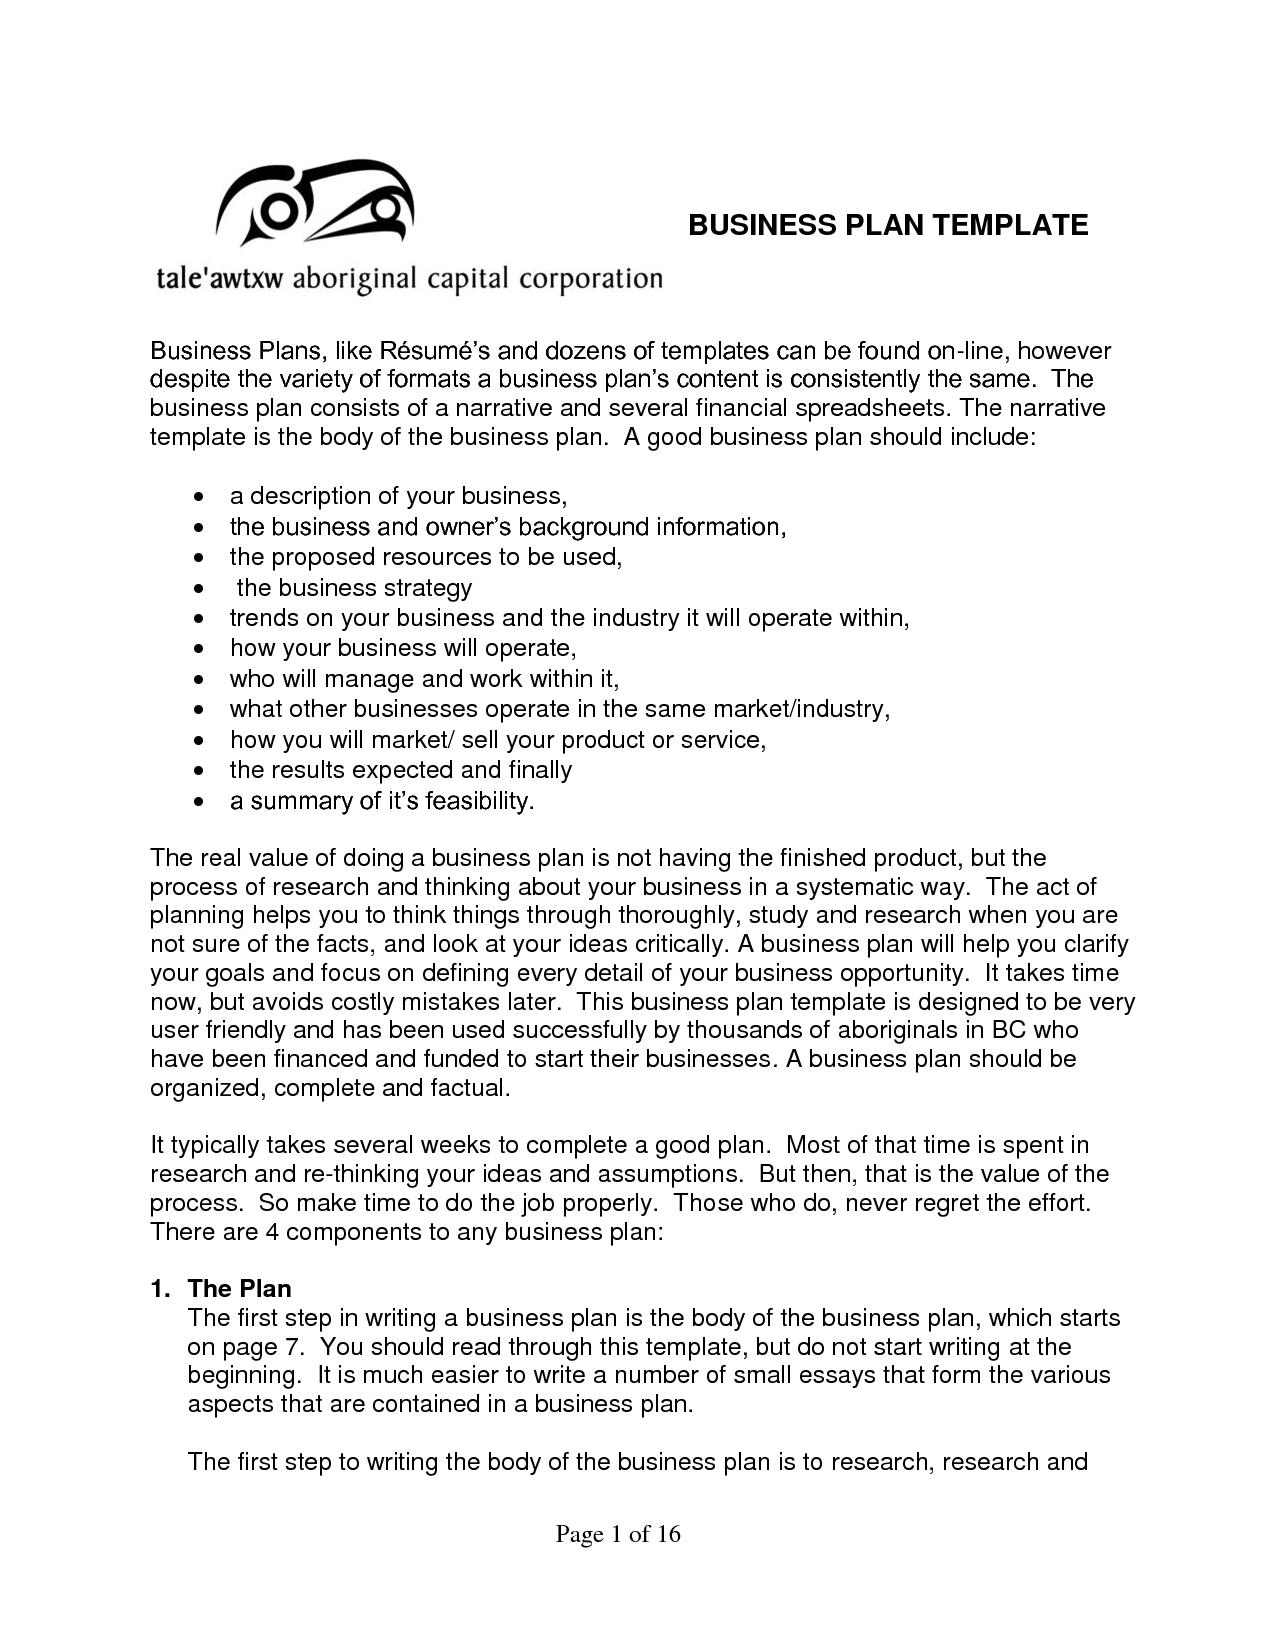 sample business plan templates - android-app.info